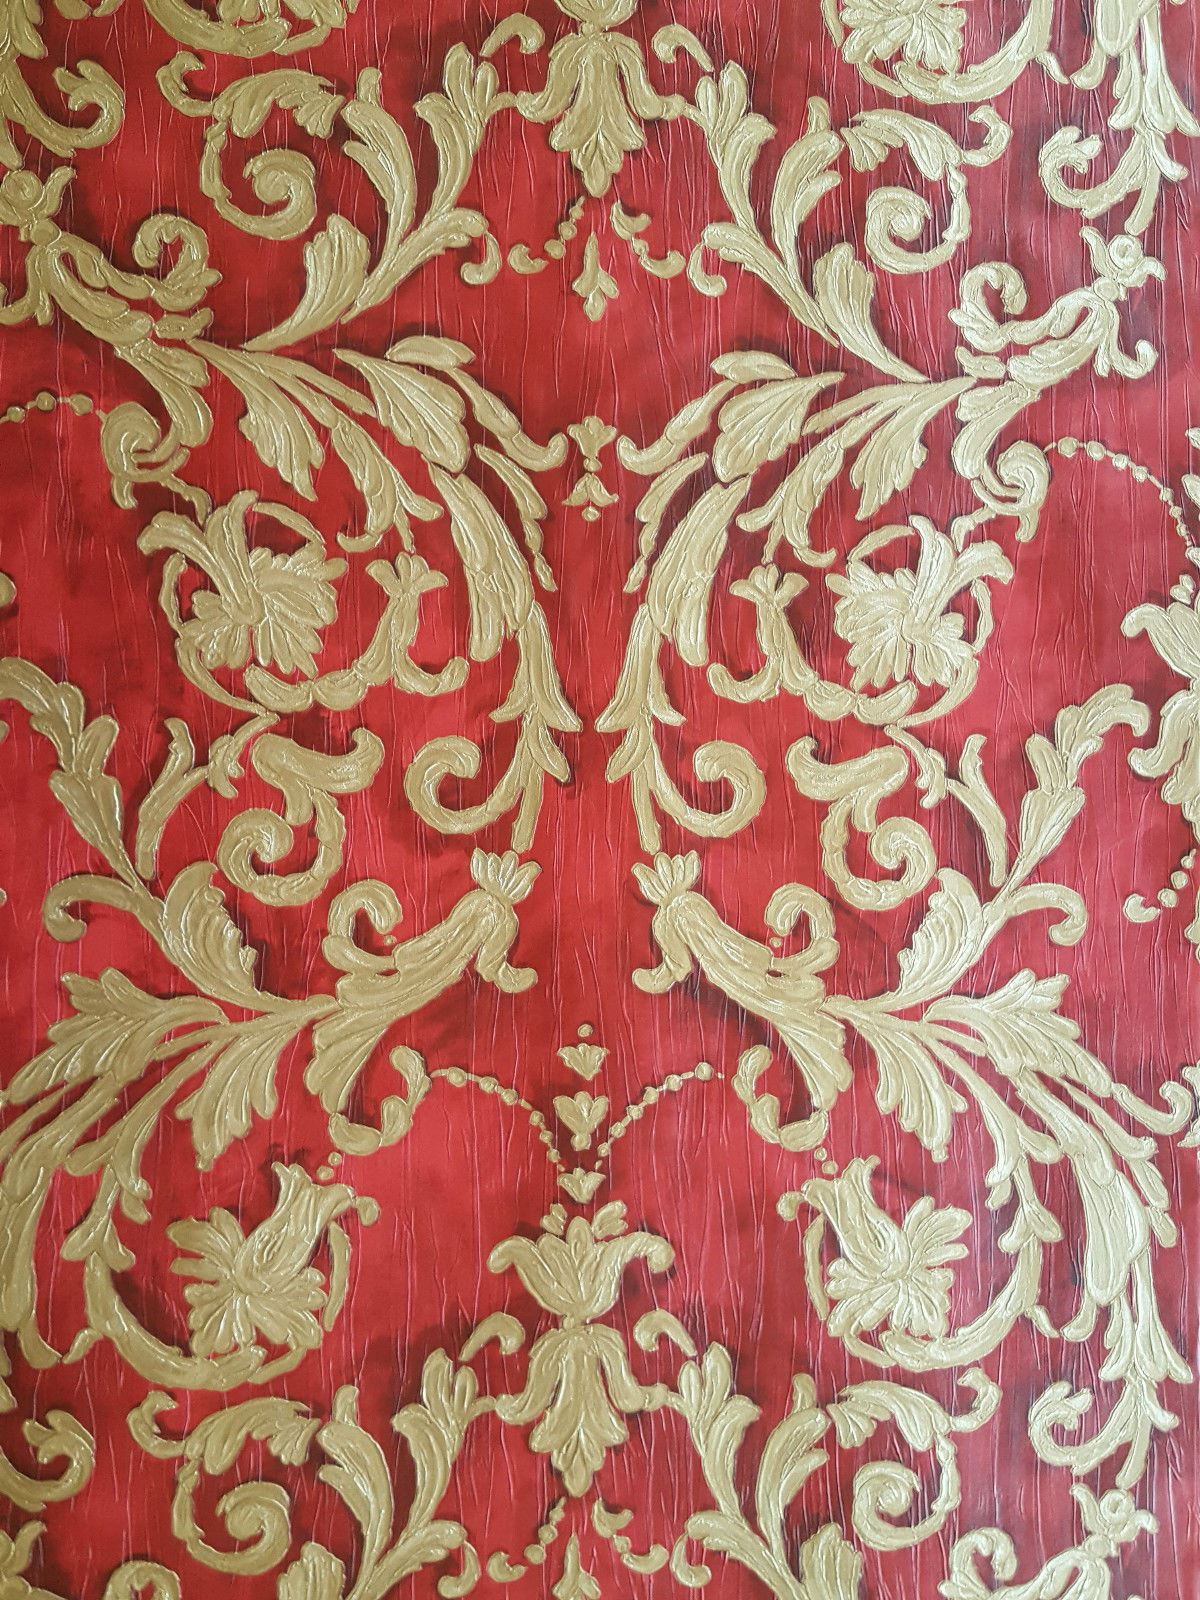 Damask Wallpaper Classic Traditional Red Gold Textured Paste The Wall